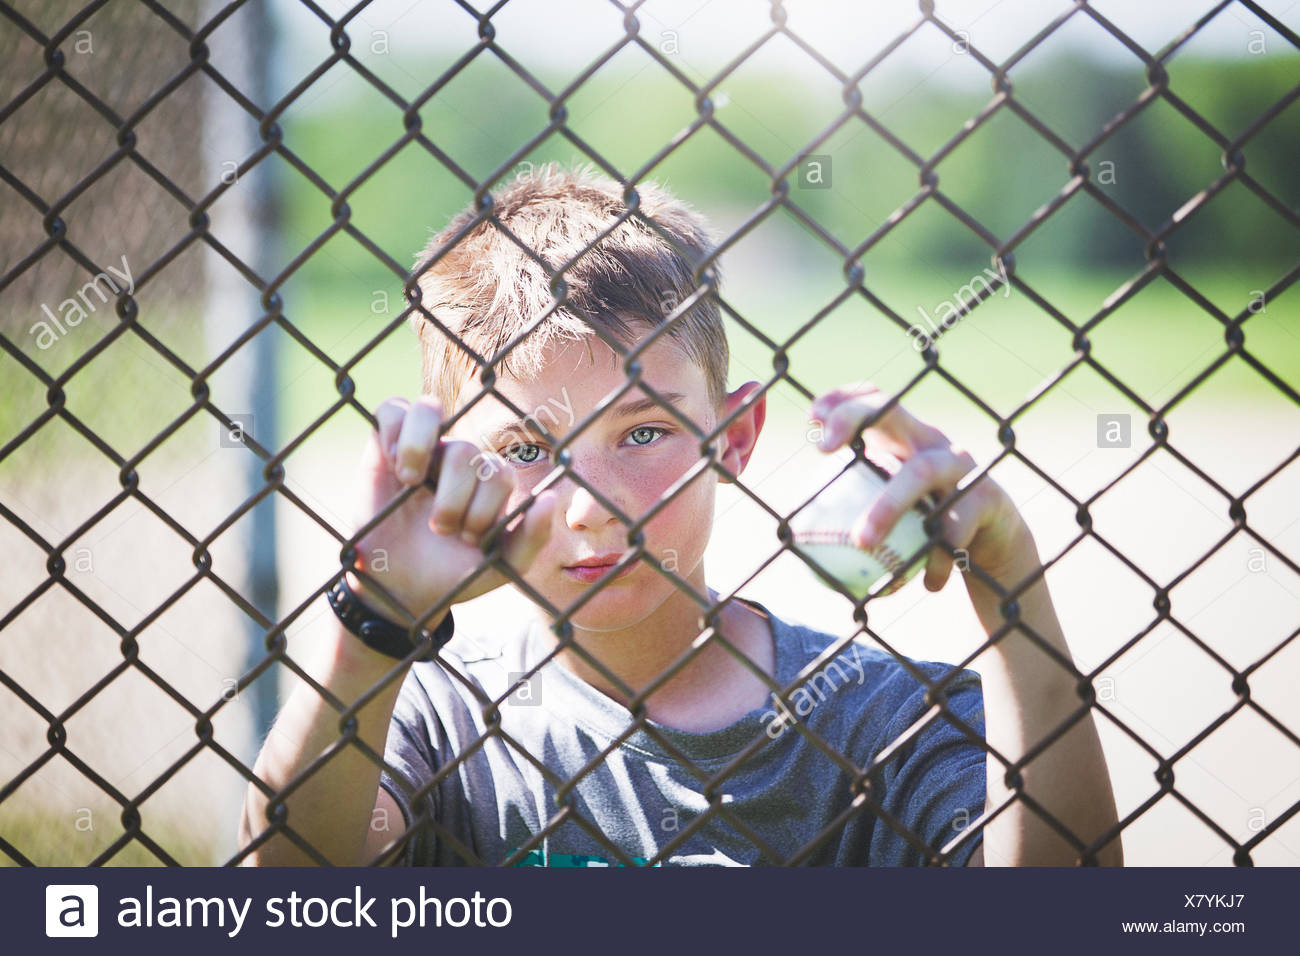 Boy On Wire Fence Center Details About Bmw E46 Instrument Cluster Panel Circuit Board 6911308 View Through Chicken Of Looking At Camera Stock Photo Rh Alamy Com